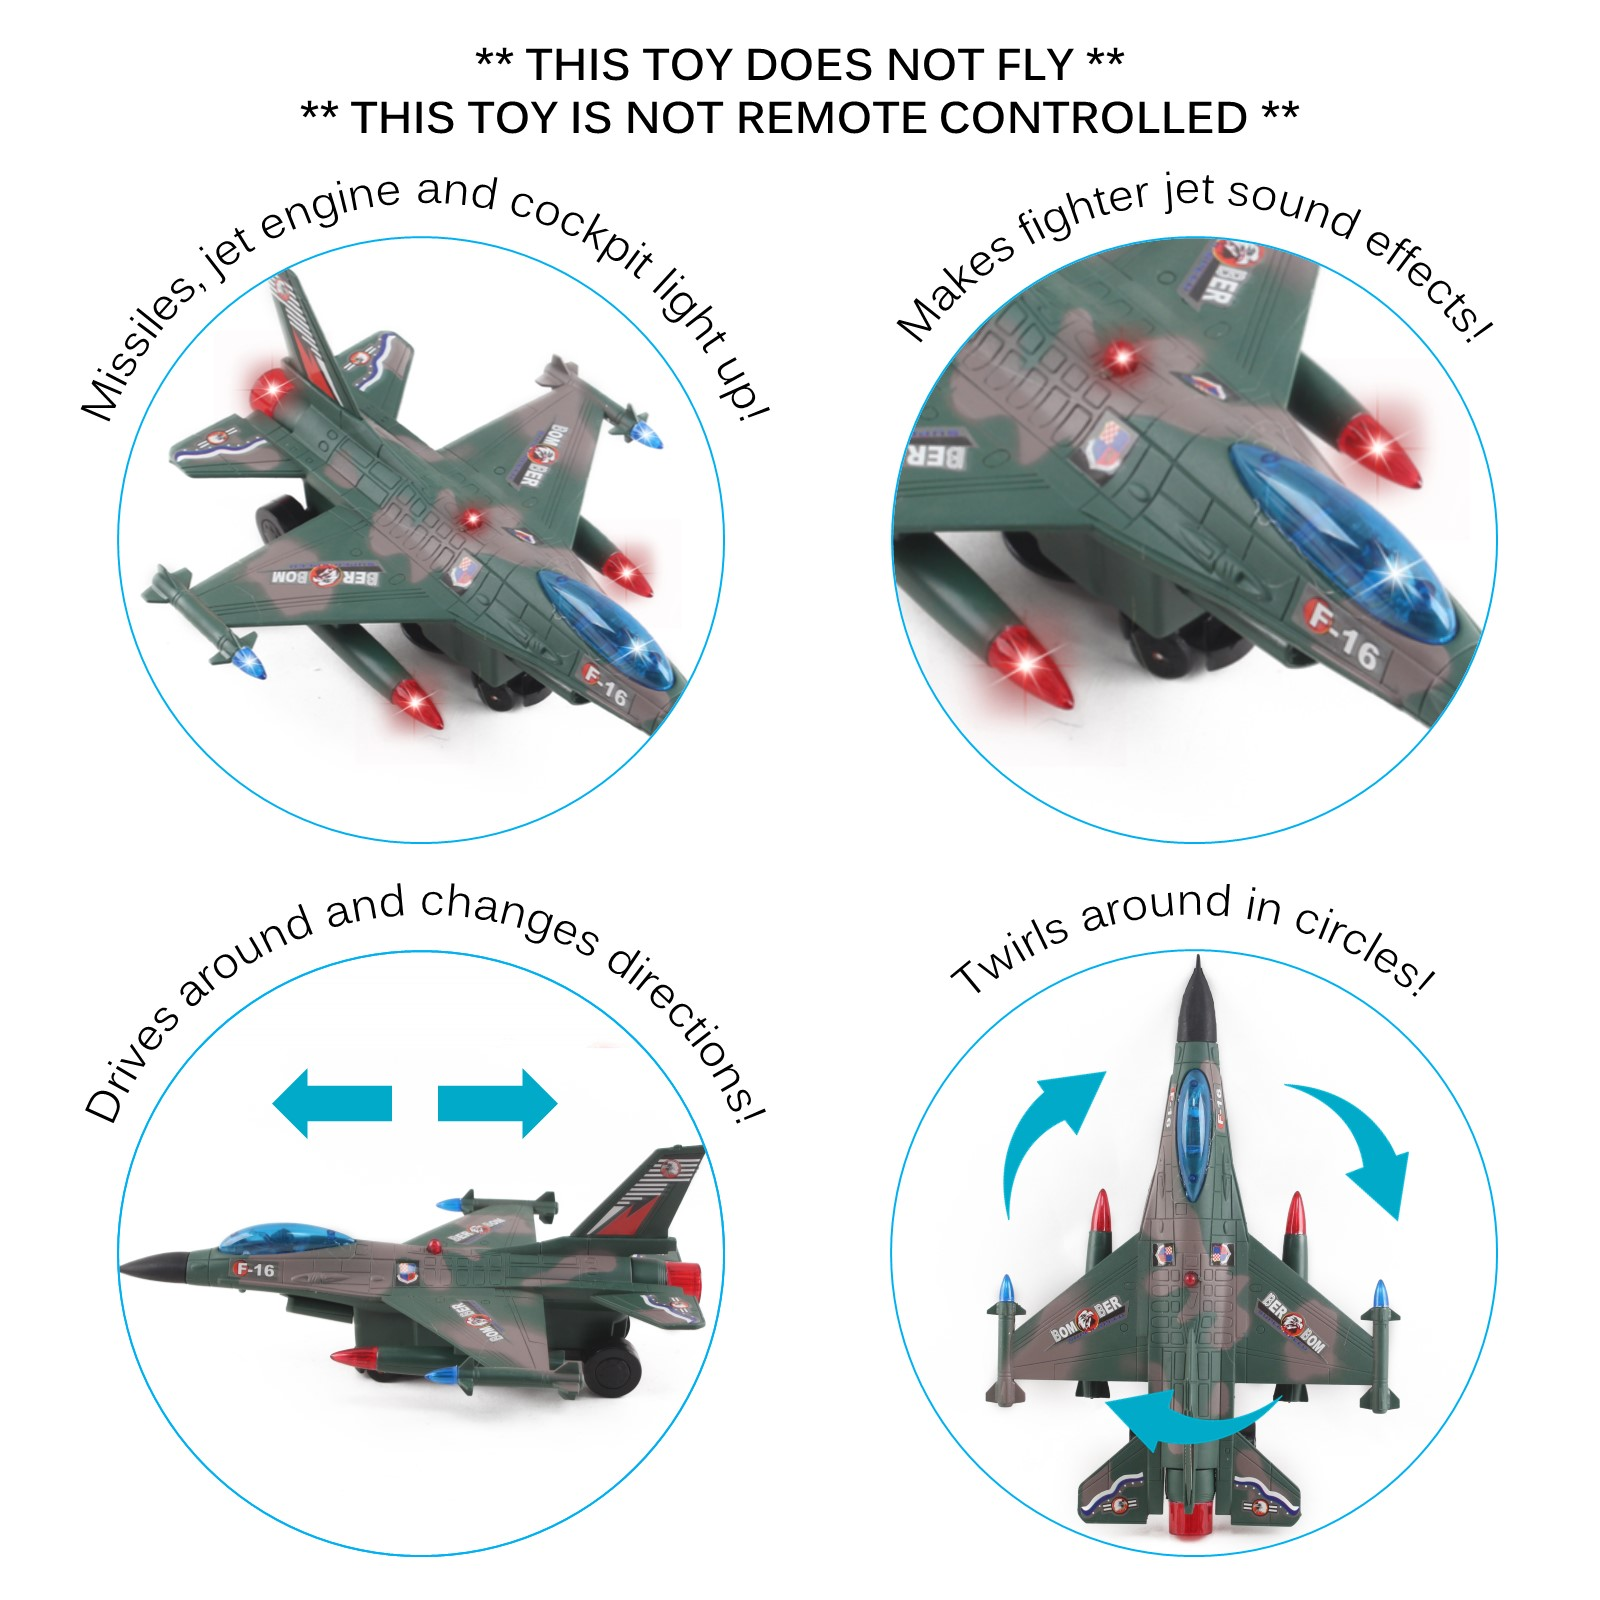 Toy Army Air Force Fighter Jet F16 Battery Operated Kids Bump and Go Toy Plane With Flashing Lights And Sounds Bumps Into Something and Will Change Direction Perfect For Boys And Girls Green